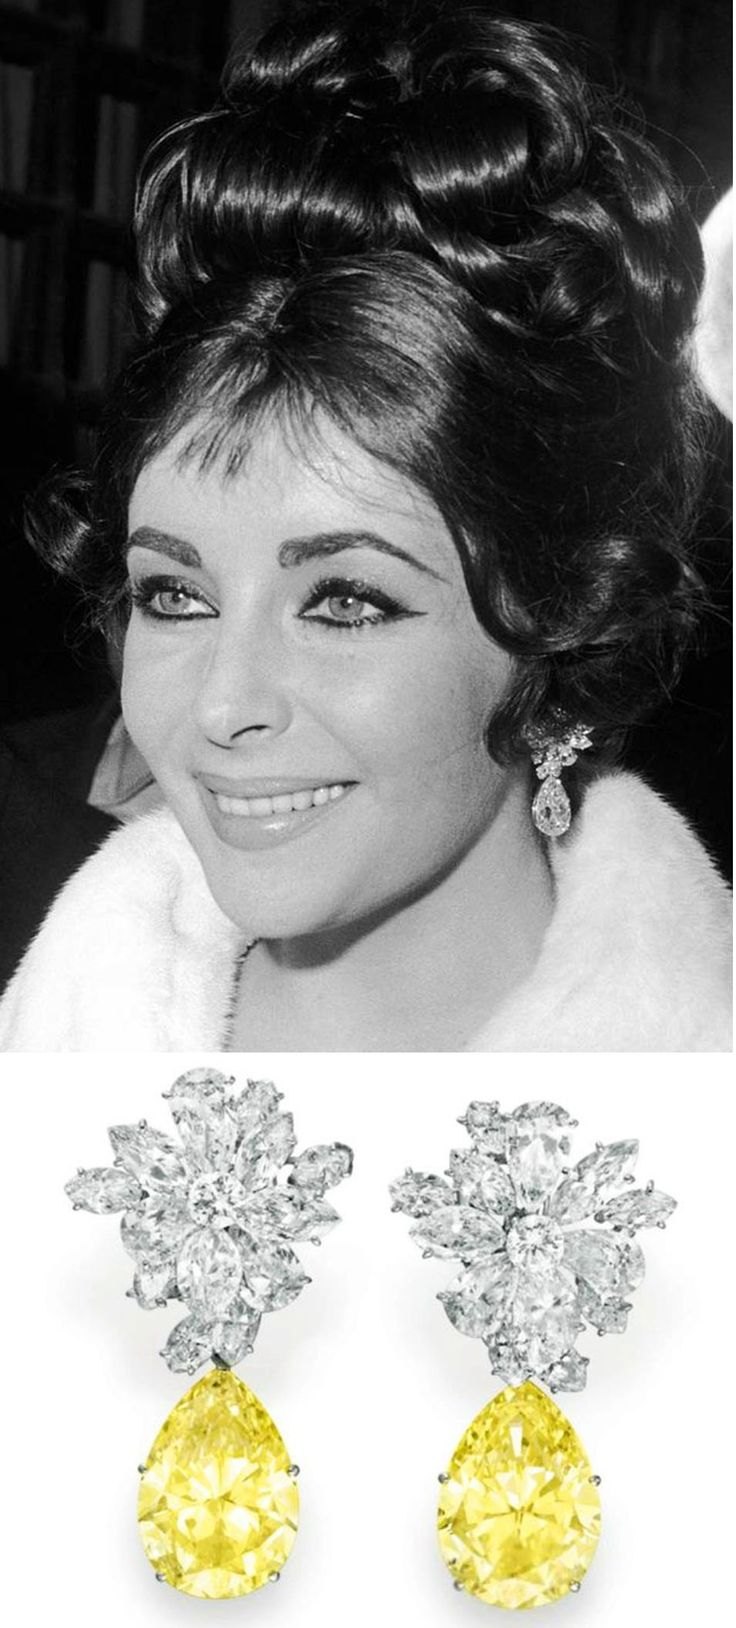 Elizabeth Taylor arrives at a restaurant in Rome to celebrate her 30th birthday, wearing white & yellow diamond earrings.